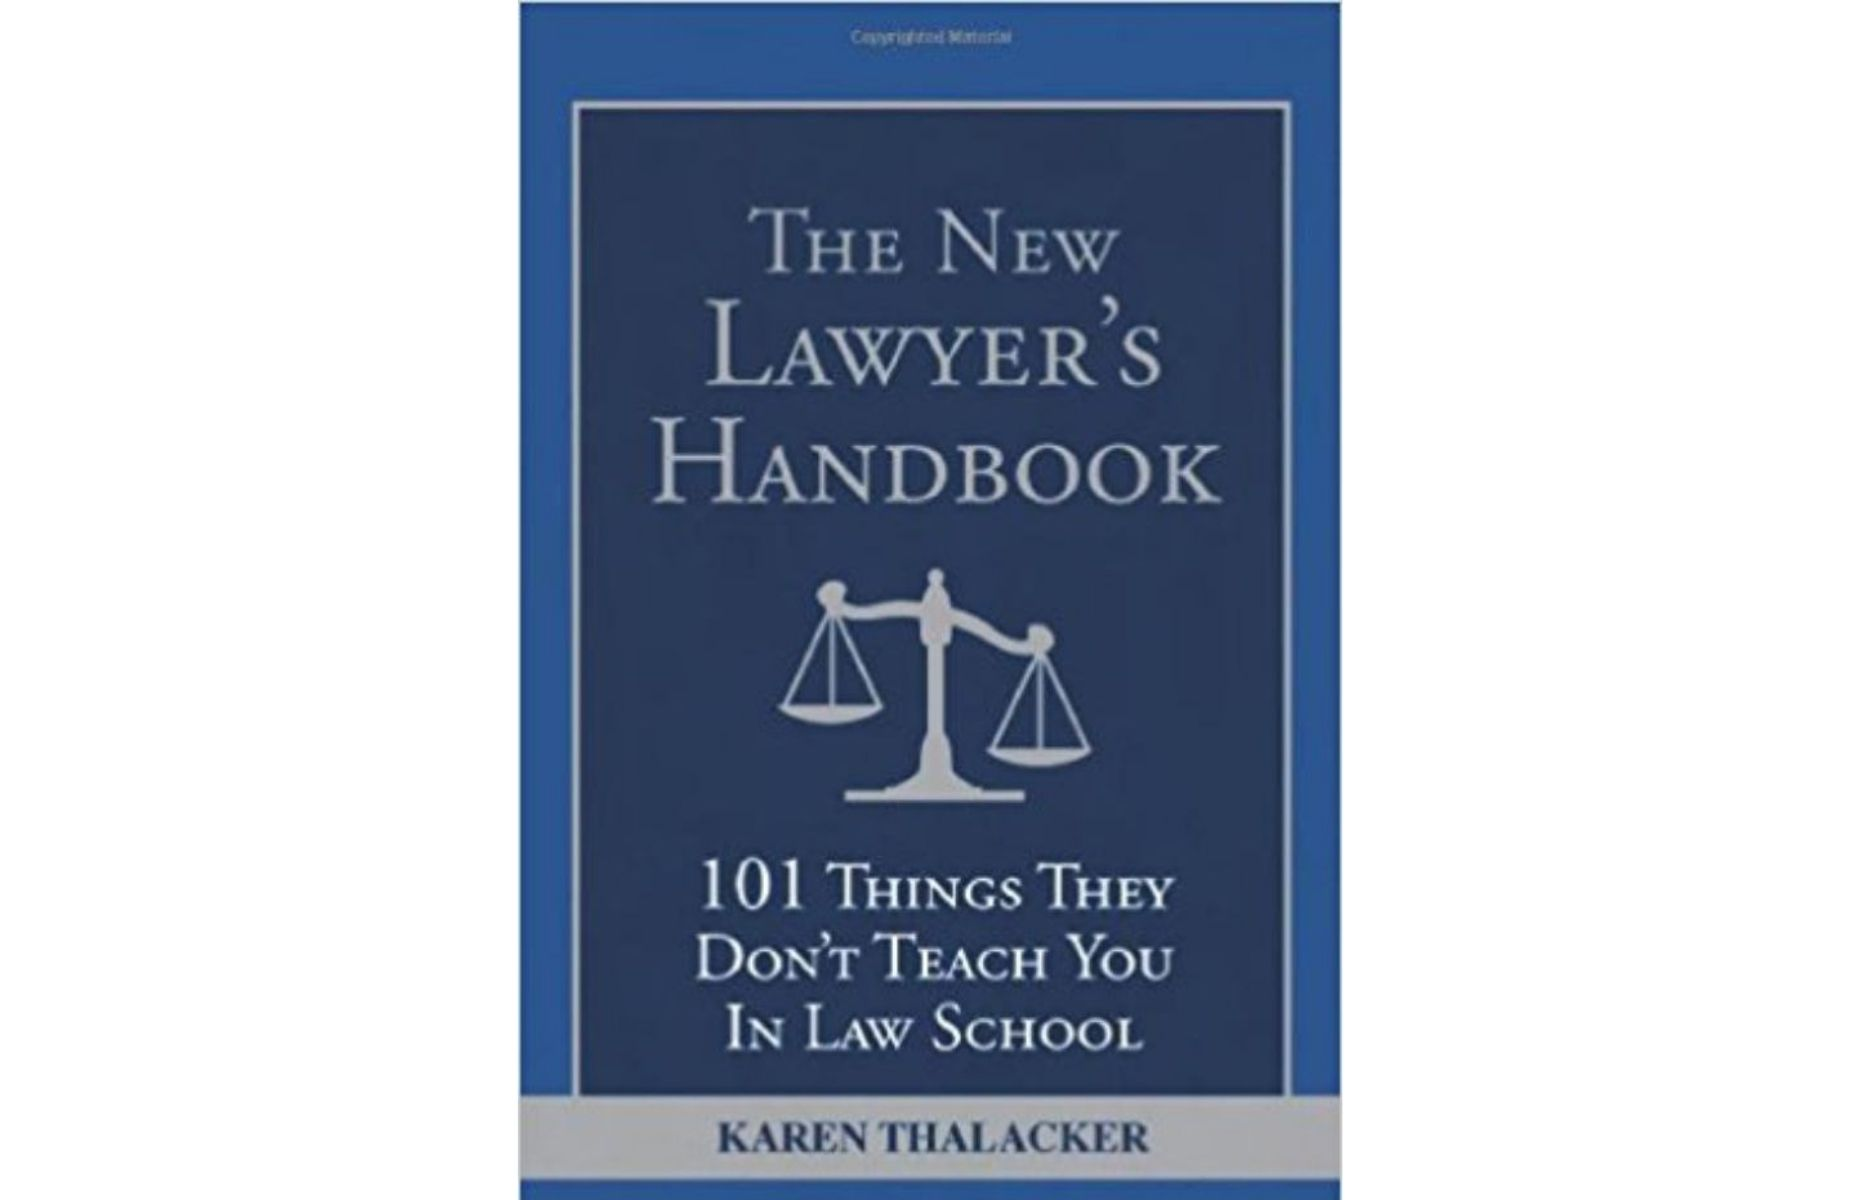 #13 The-new-lawyers-handbook